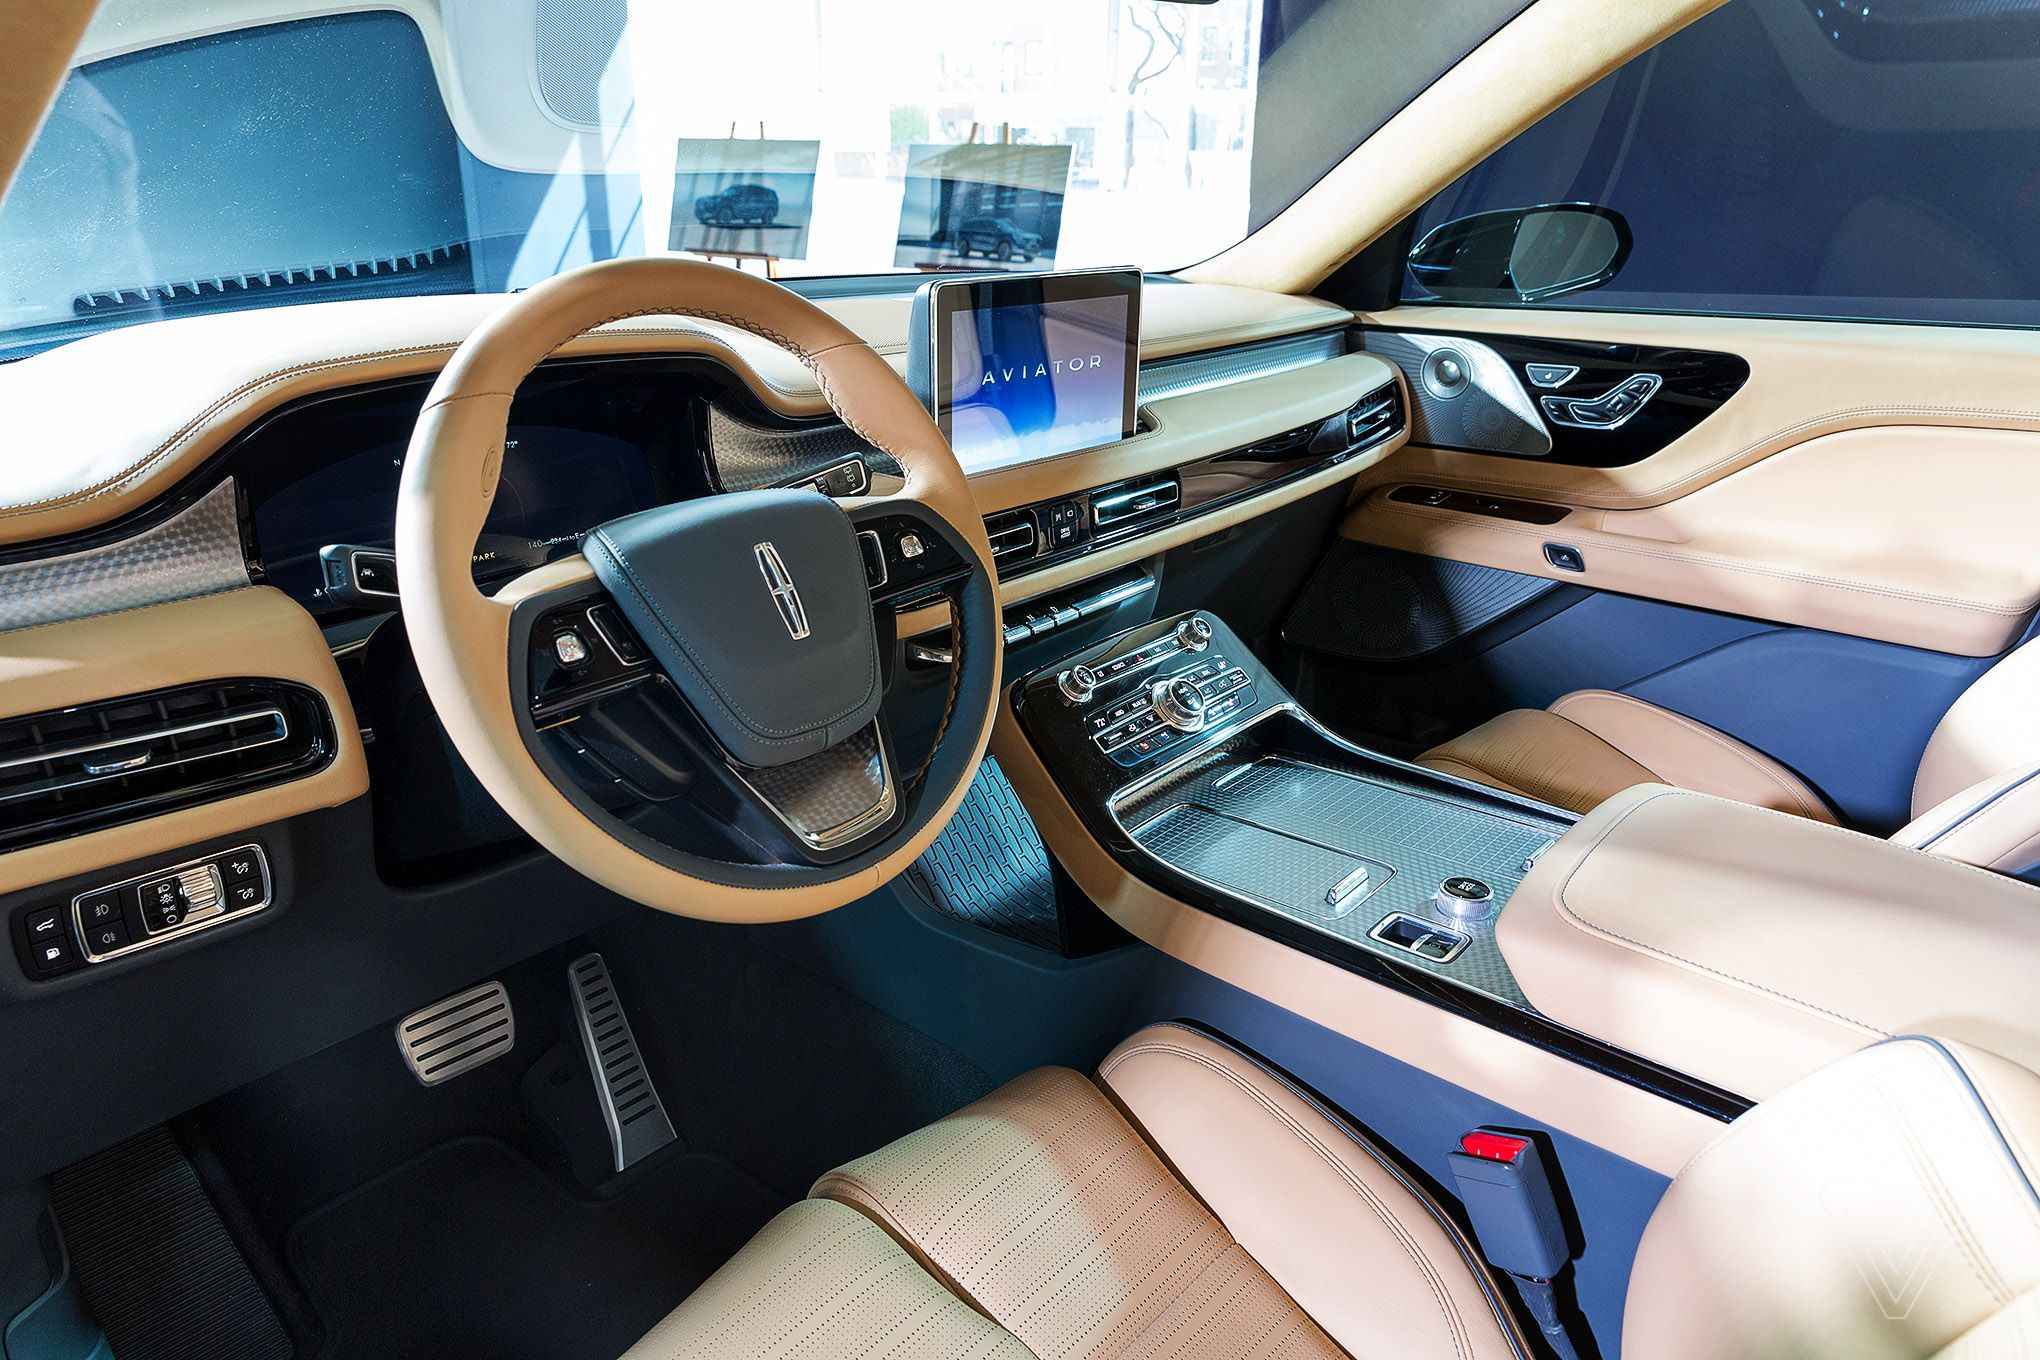 The Lincoln Aviator Is A Plug In Hybrid Suv With A Smartphone As A Key Lincoln Aviator Plug In Hybrid Suv Aviation